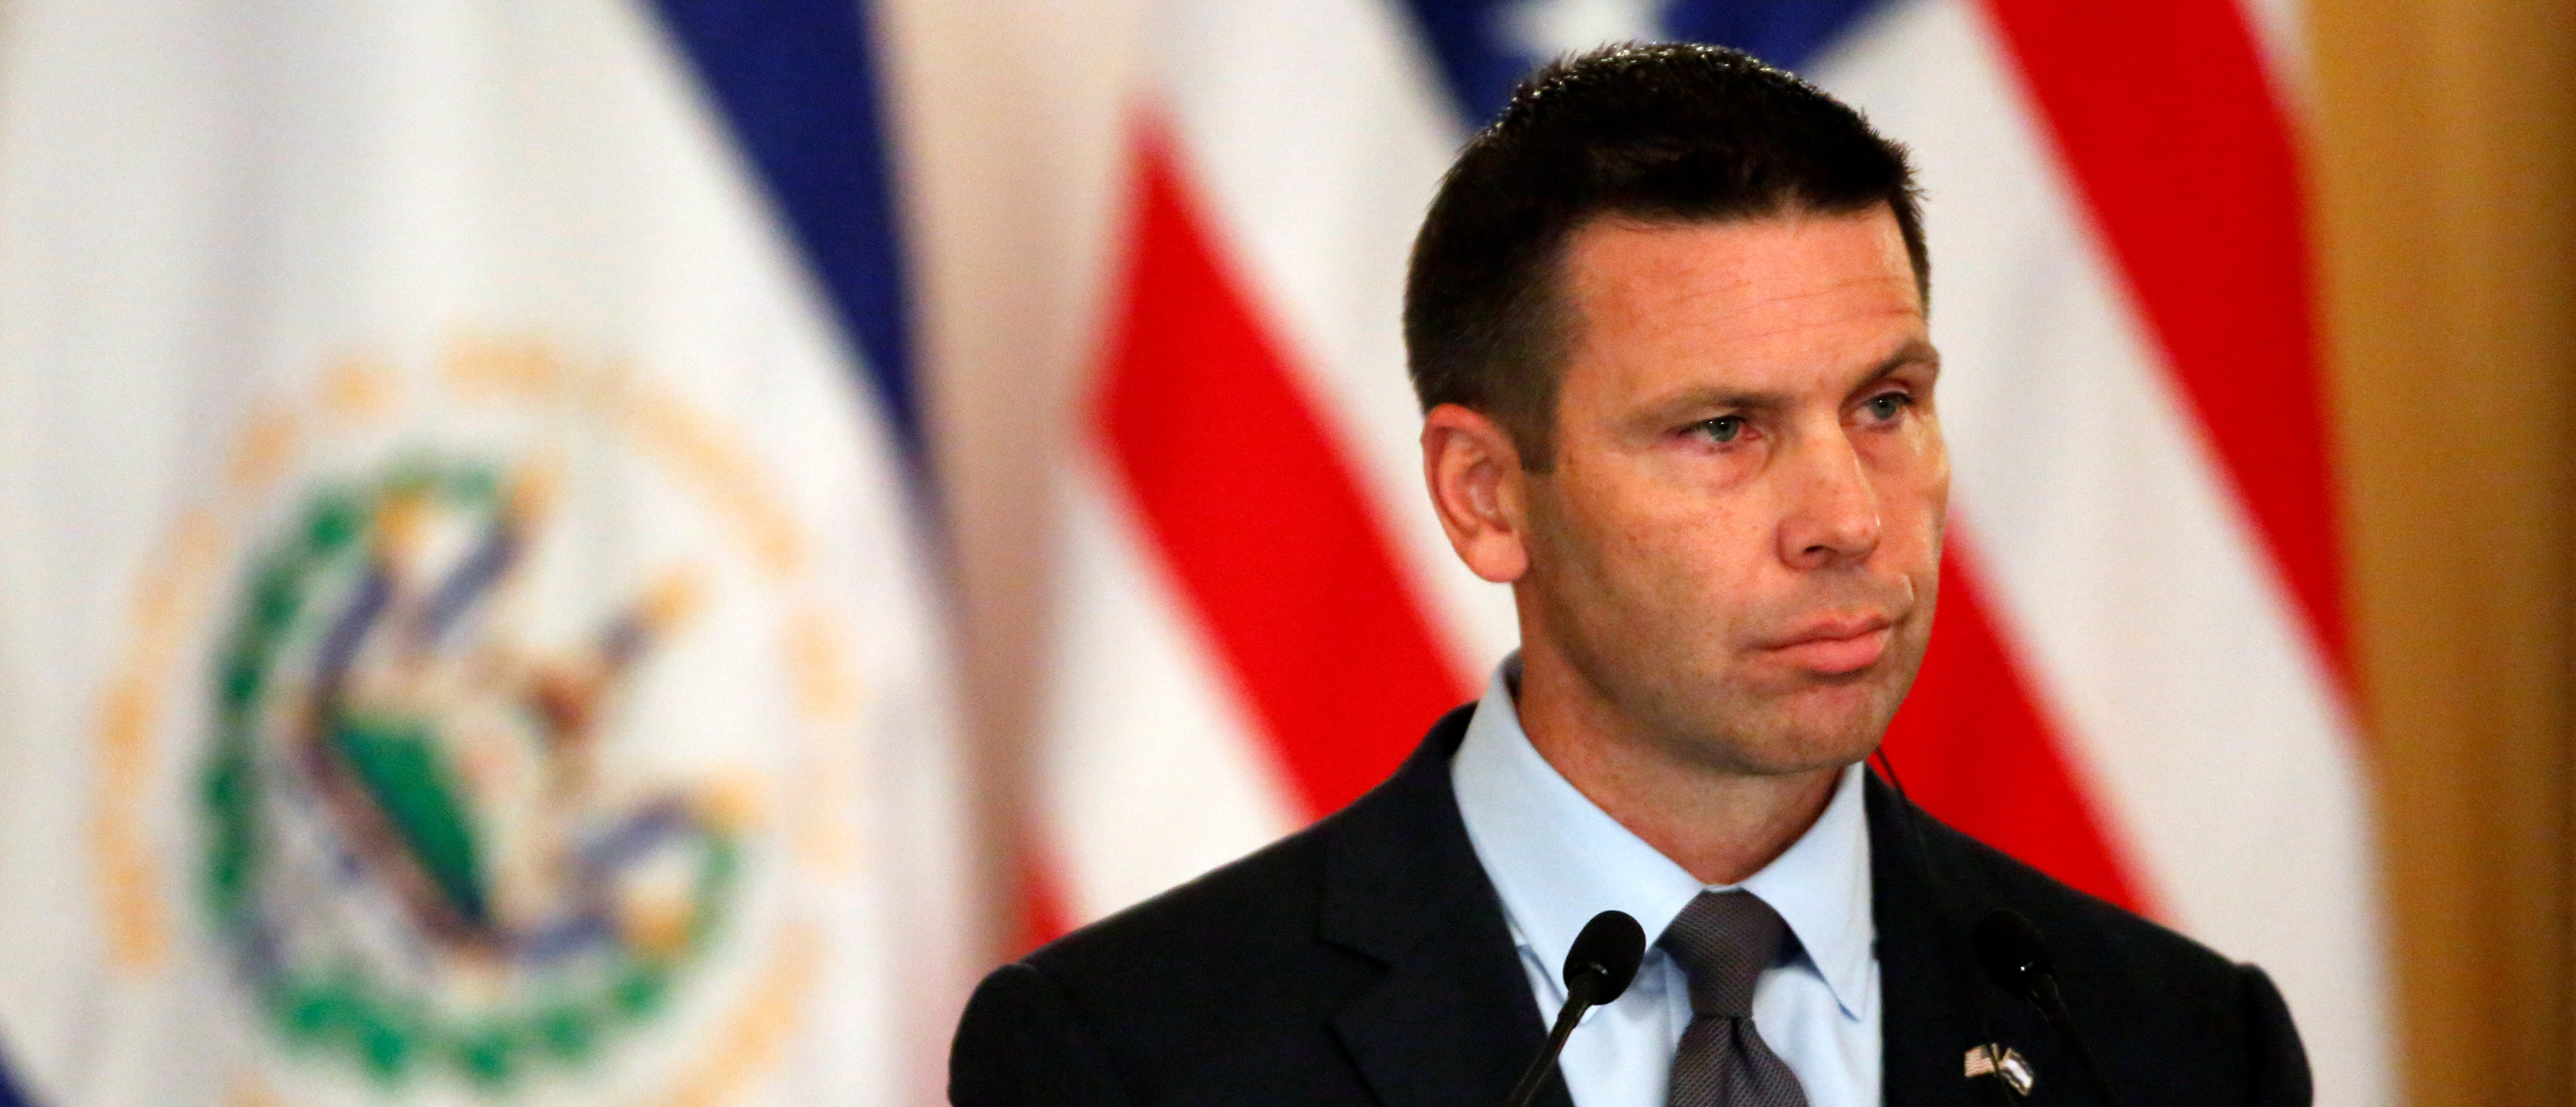 With Kevin McAleenan Stepping Down, Who Is Likely To Be The Next Homeland Security Secretary?